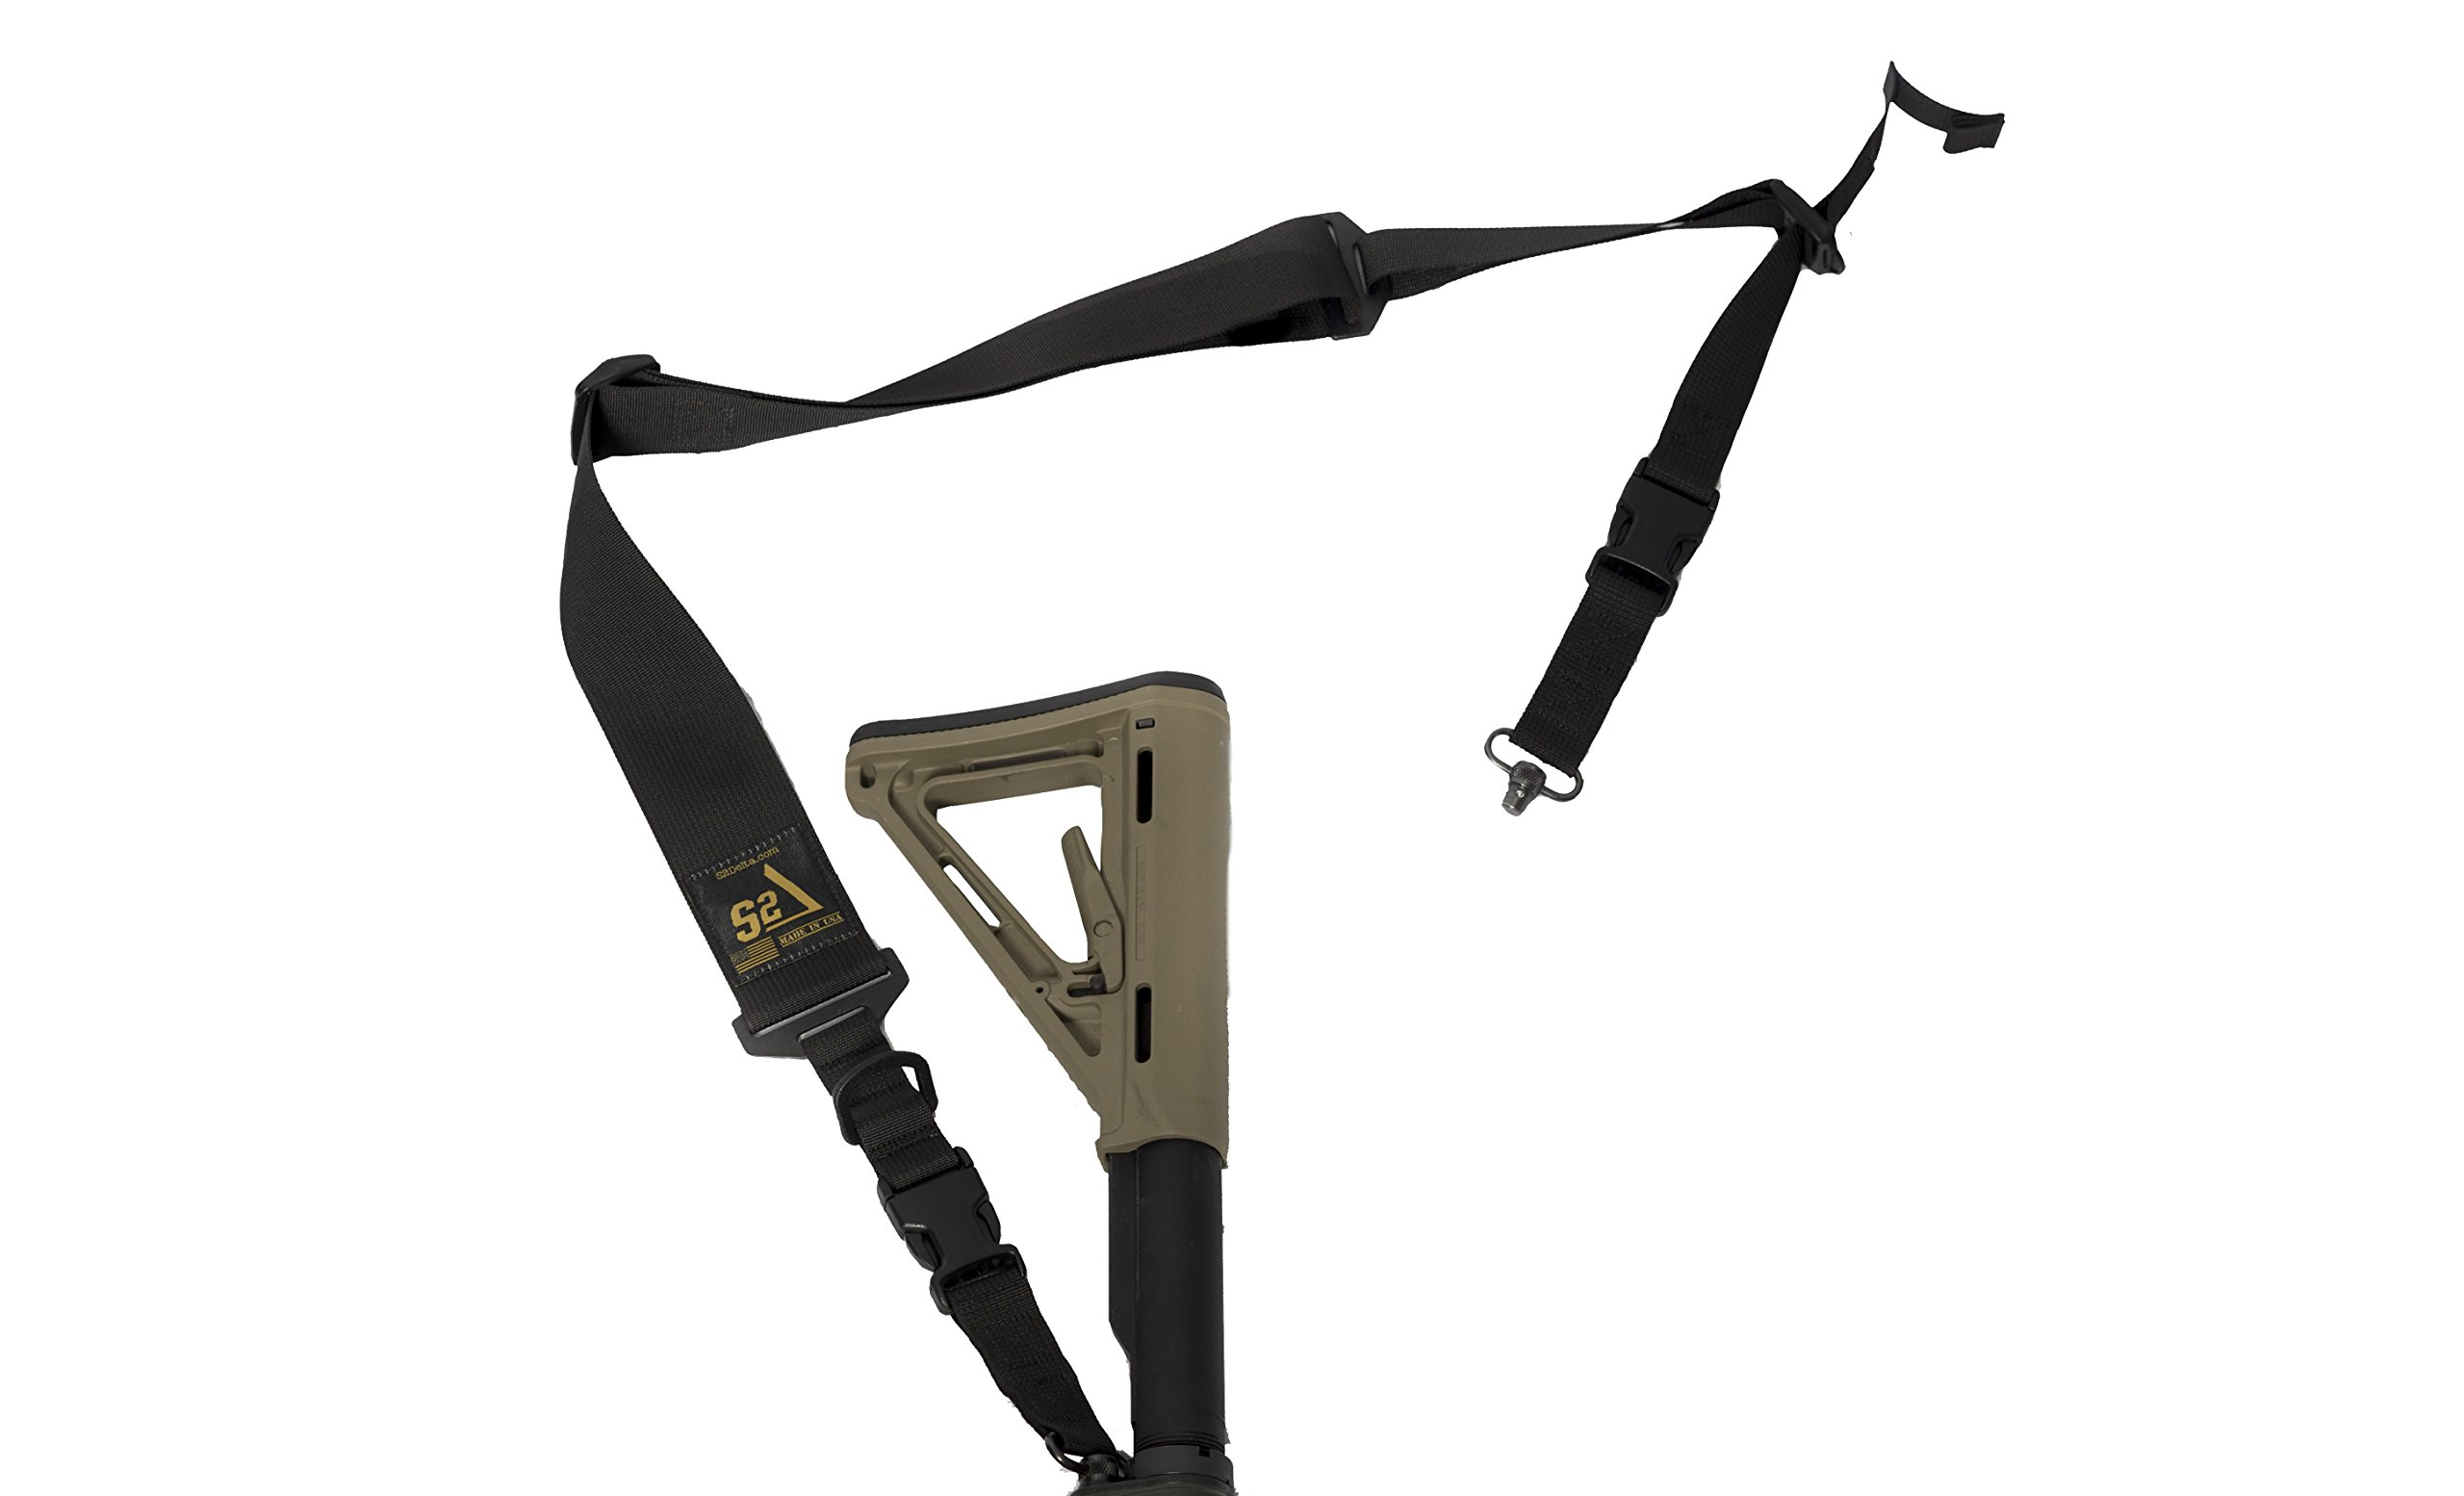 S2Delta - USA Made 2 Point Rifle Sling, Quick Adjustment, Modular Attachment Connections, Comfortable 2'' Wide Shoulder Strap to 1'' Attachment Ends (Black with Push Button Swivels) by S2Delta